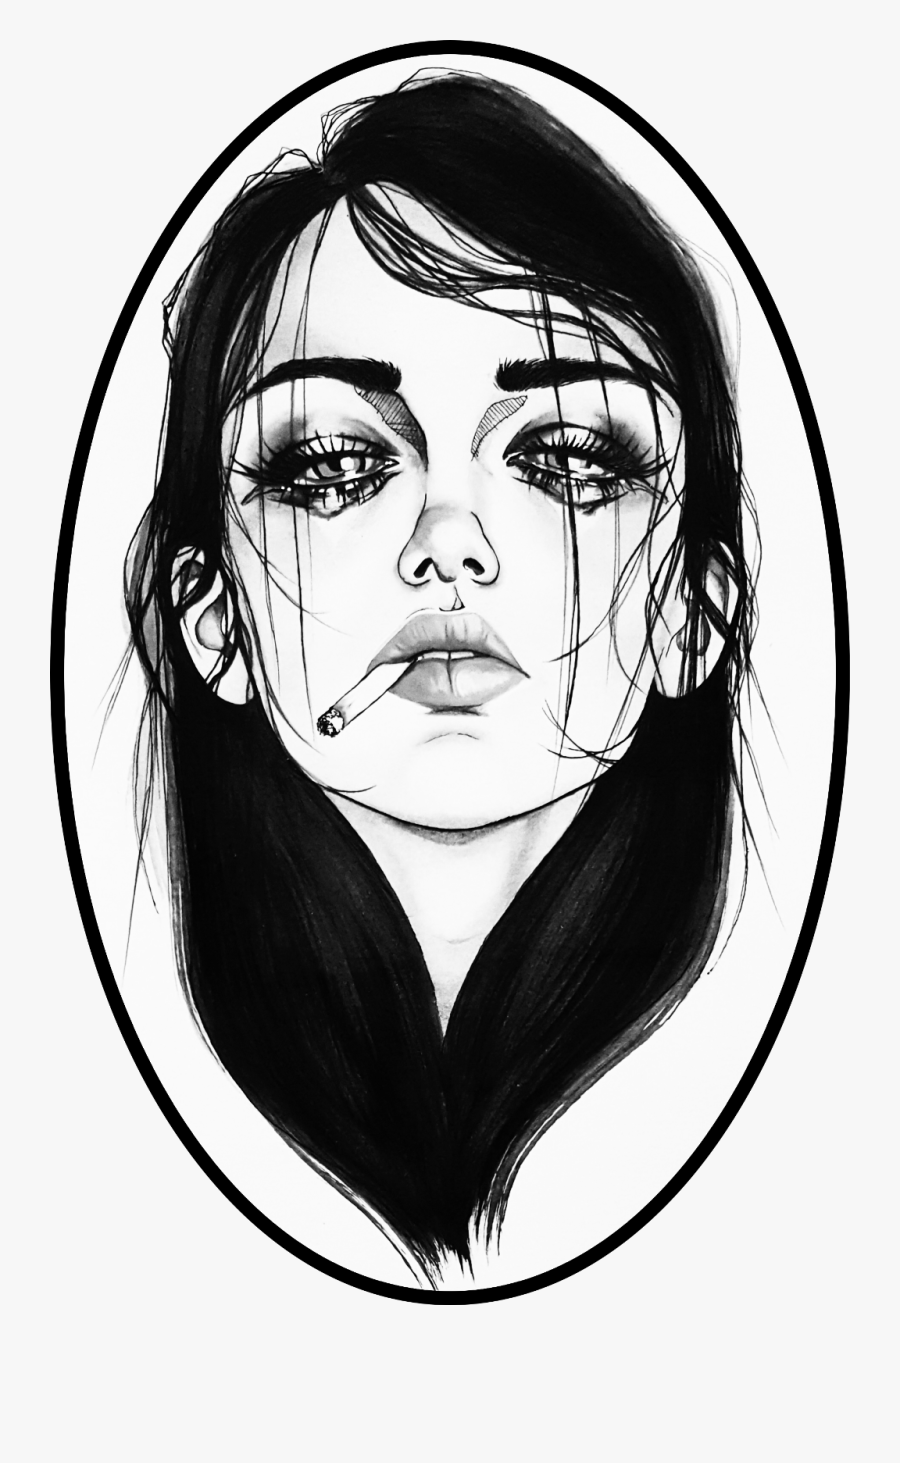 Sad Girl, Transparent Clipart